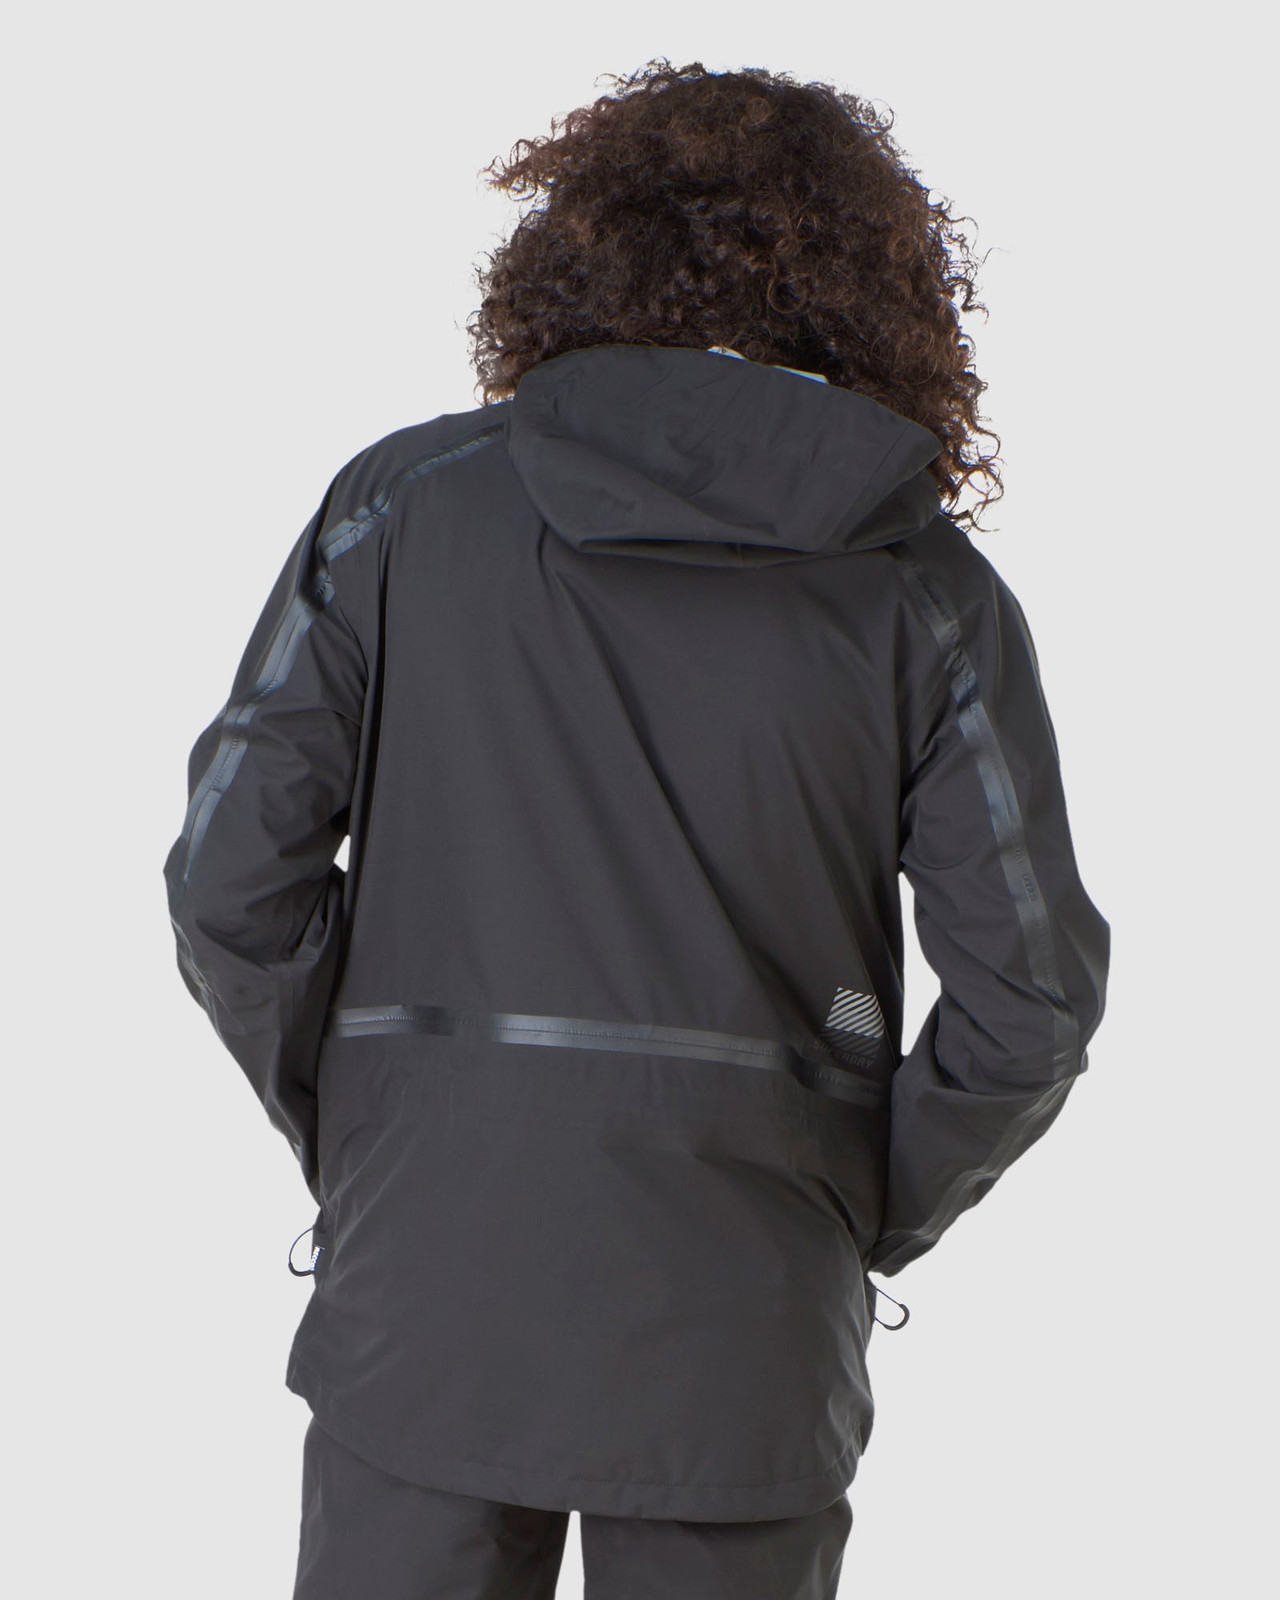 Superdry Mens EXPEDITION SHELL JACKET Black Snow Jackets 7